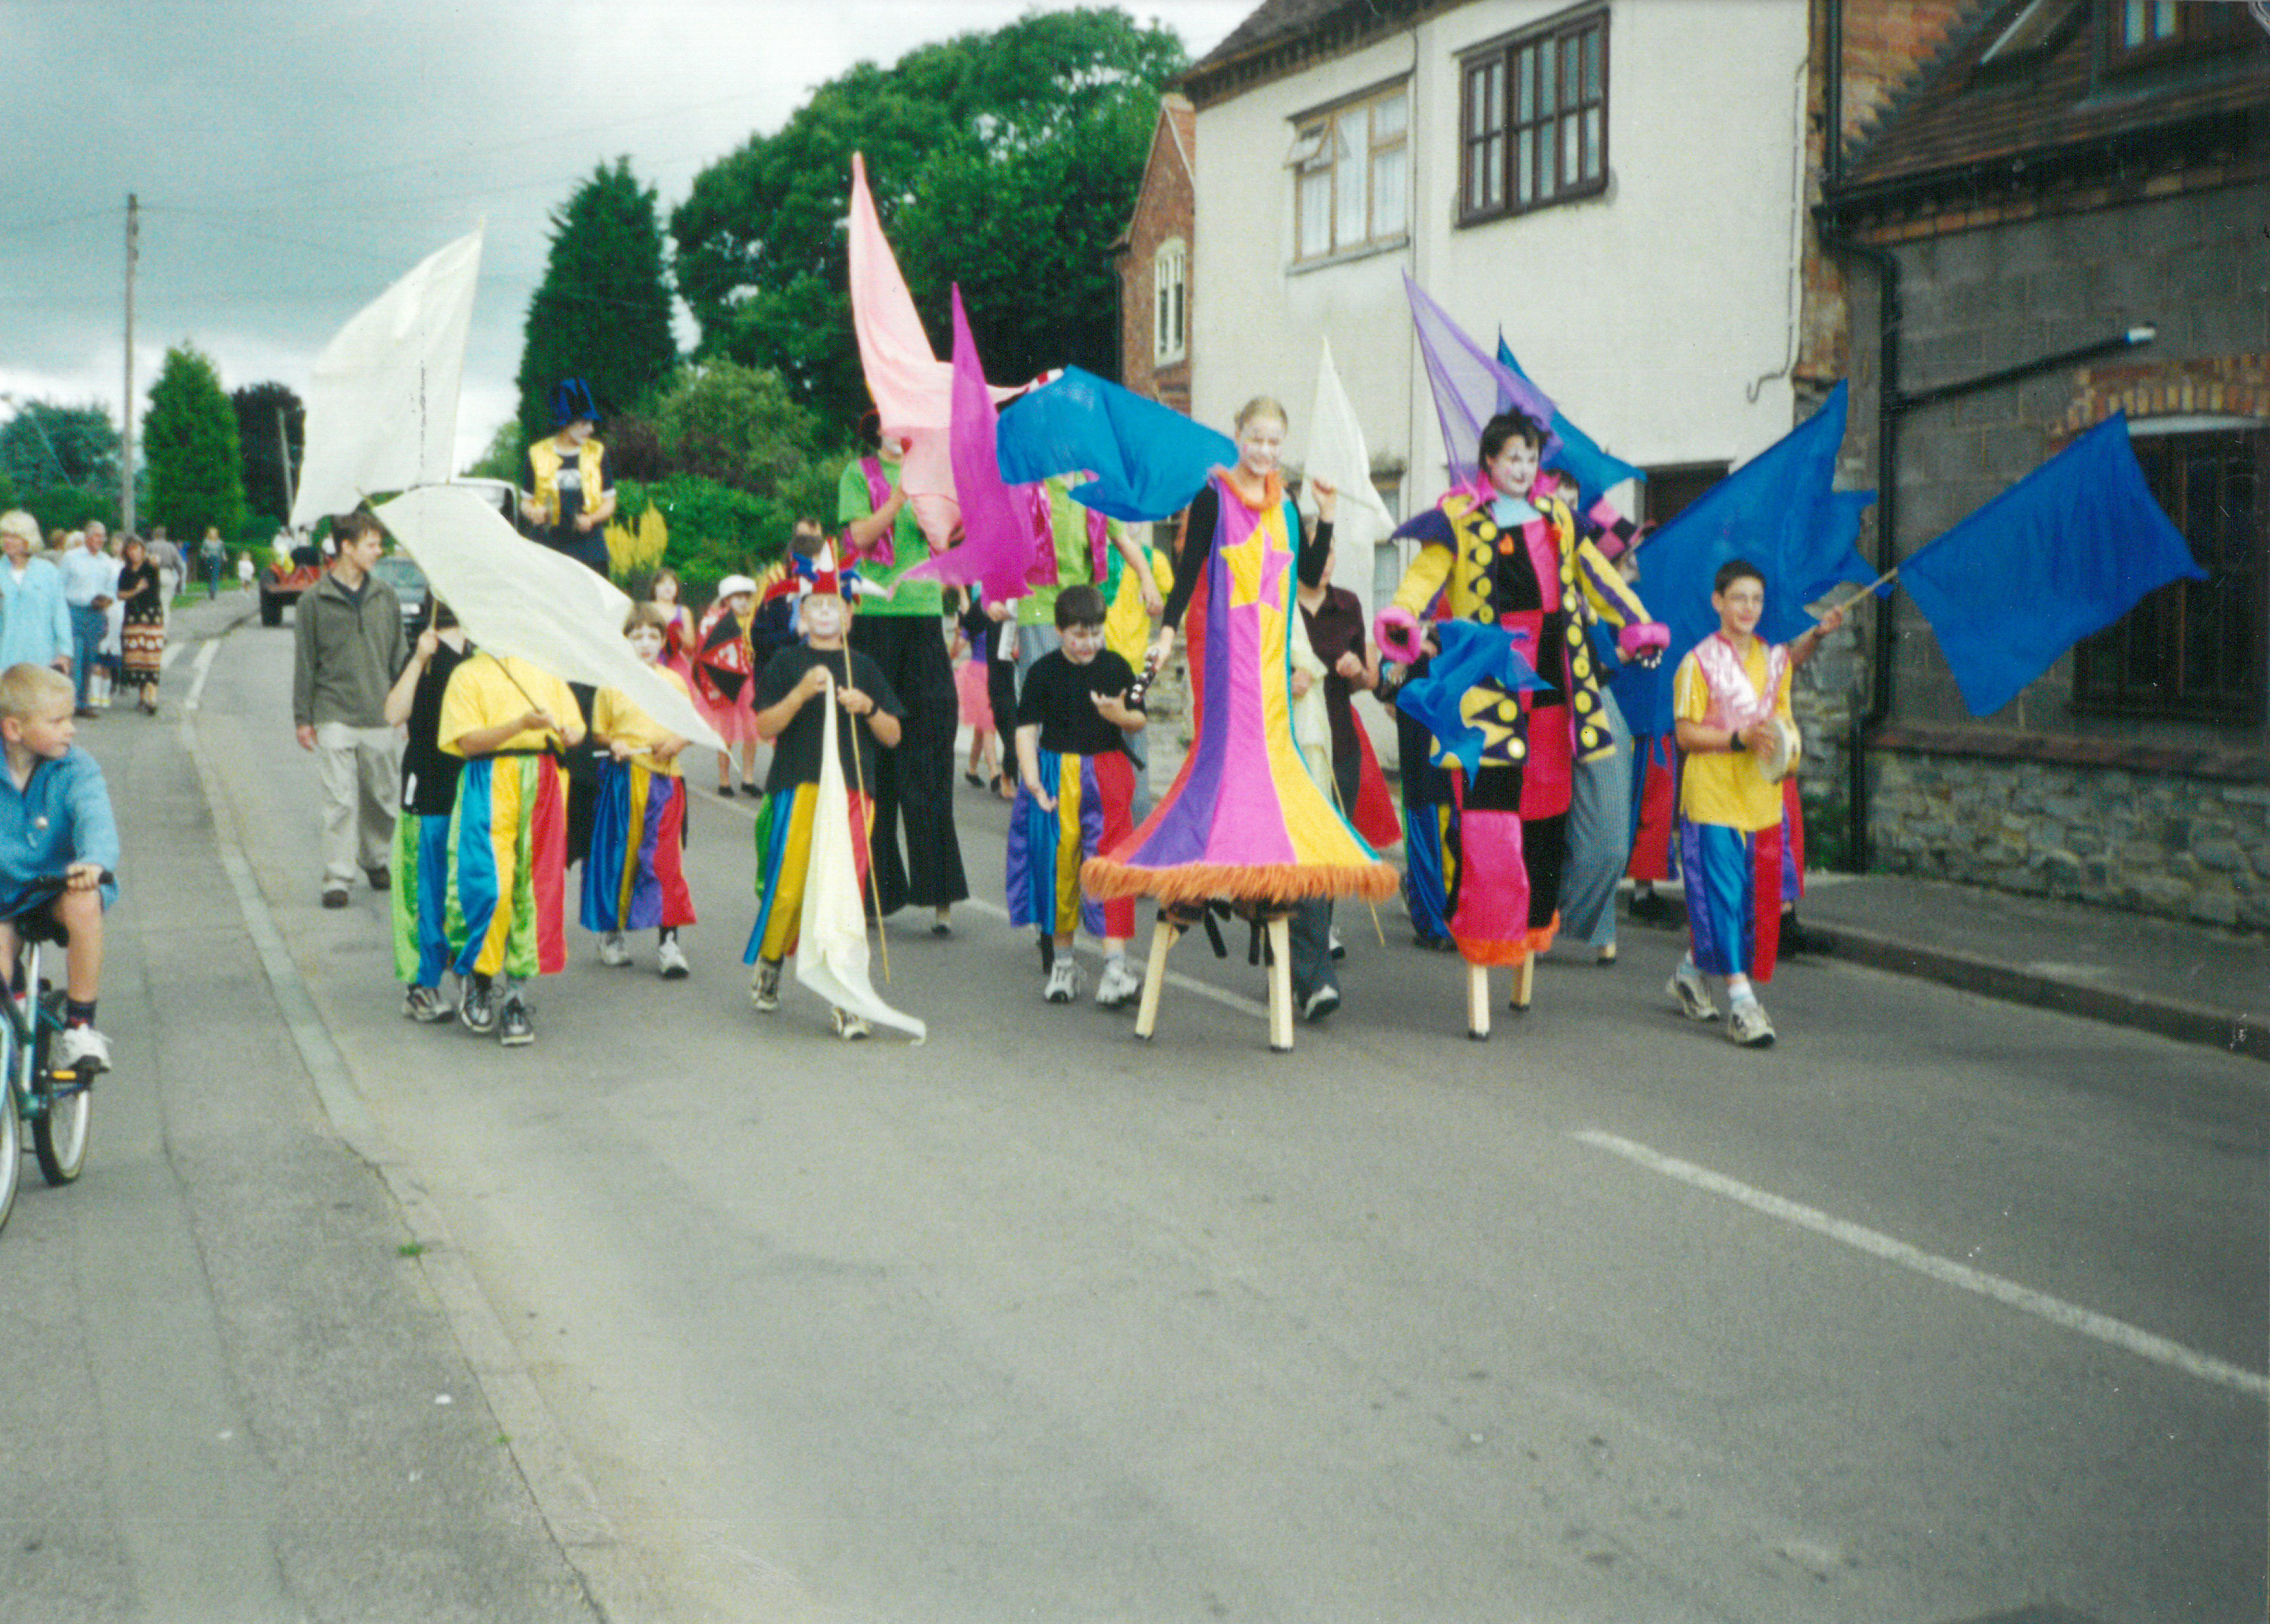 A colourful procession of people on stilts and with flags  down a street.